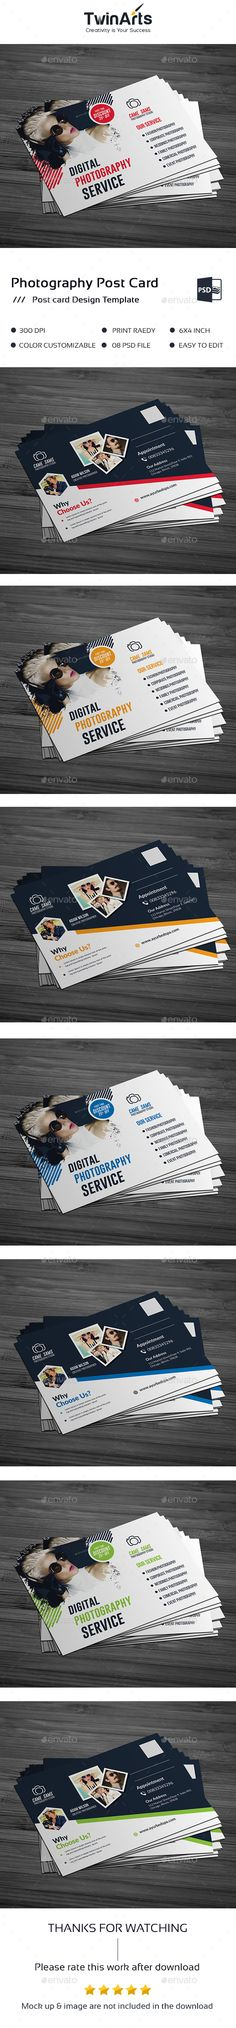 Photography Postcard Design Template PSD